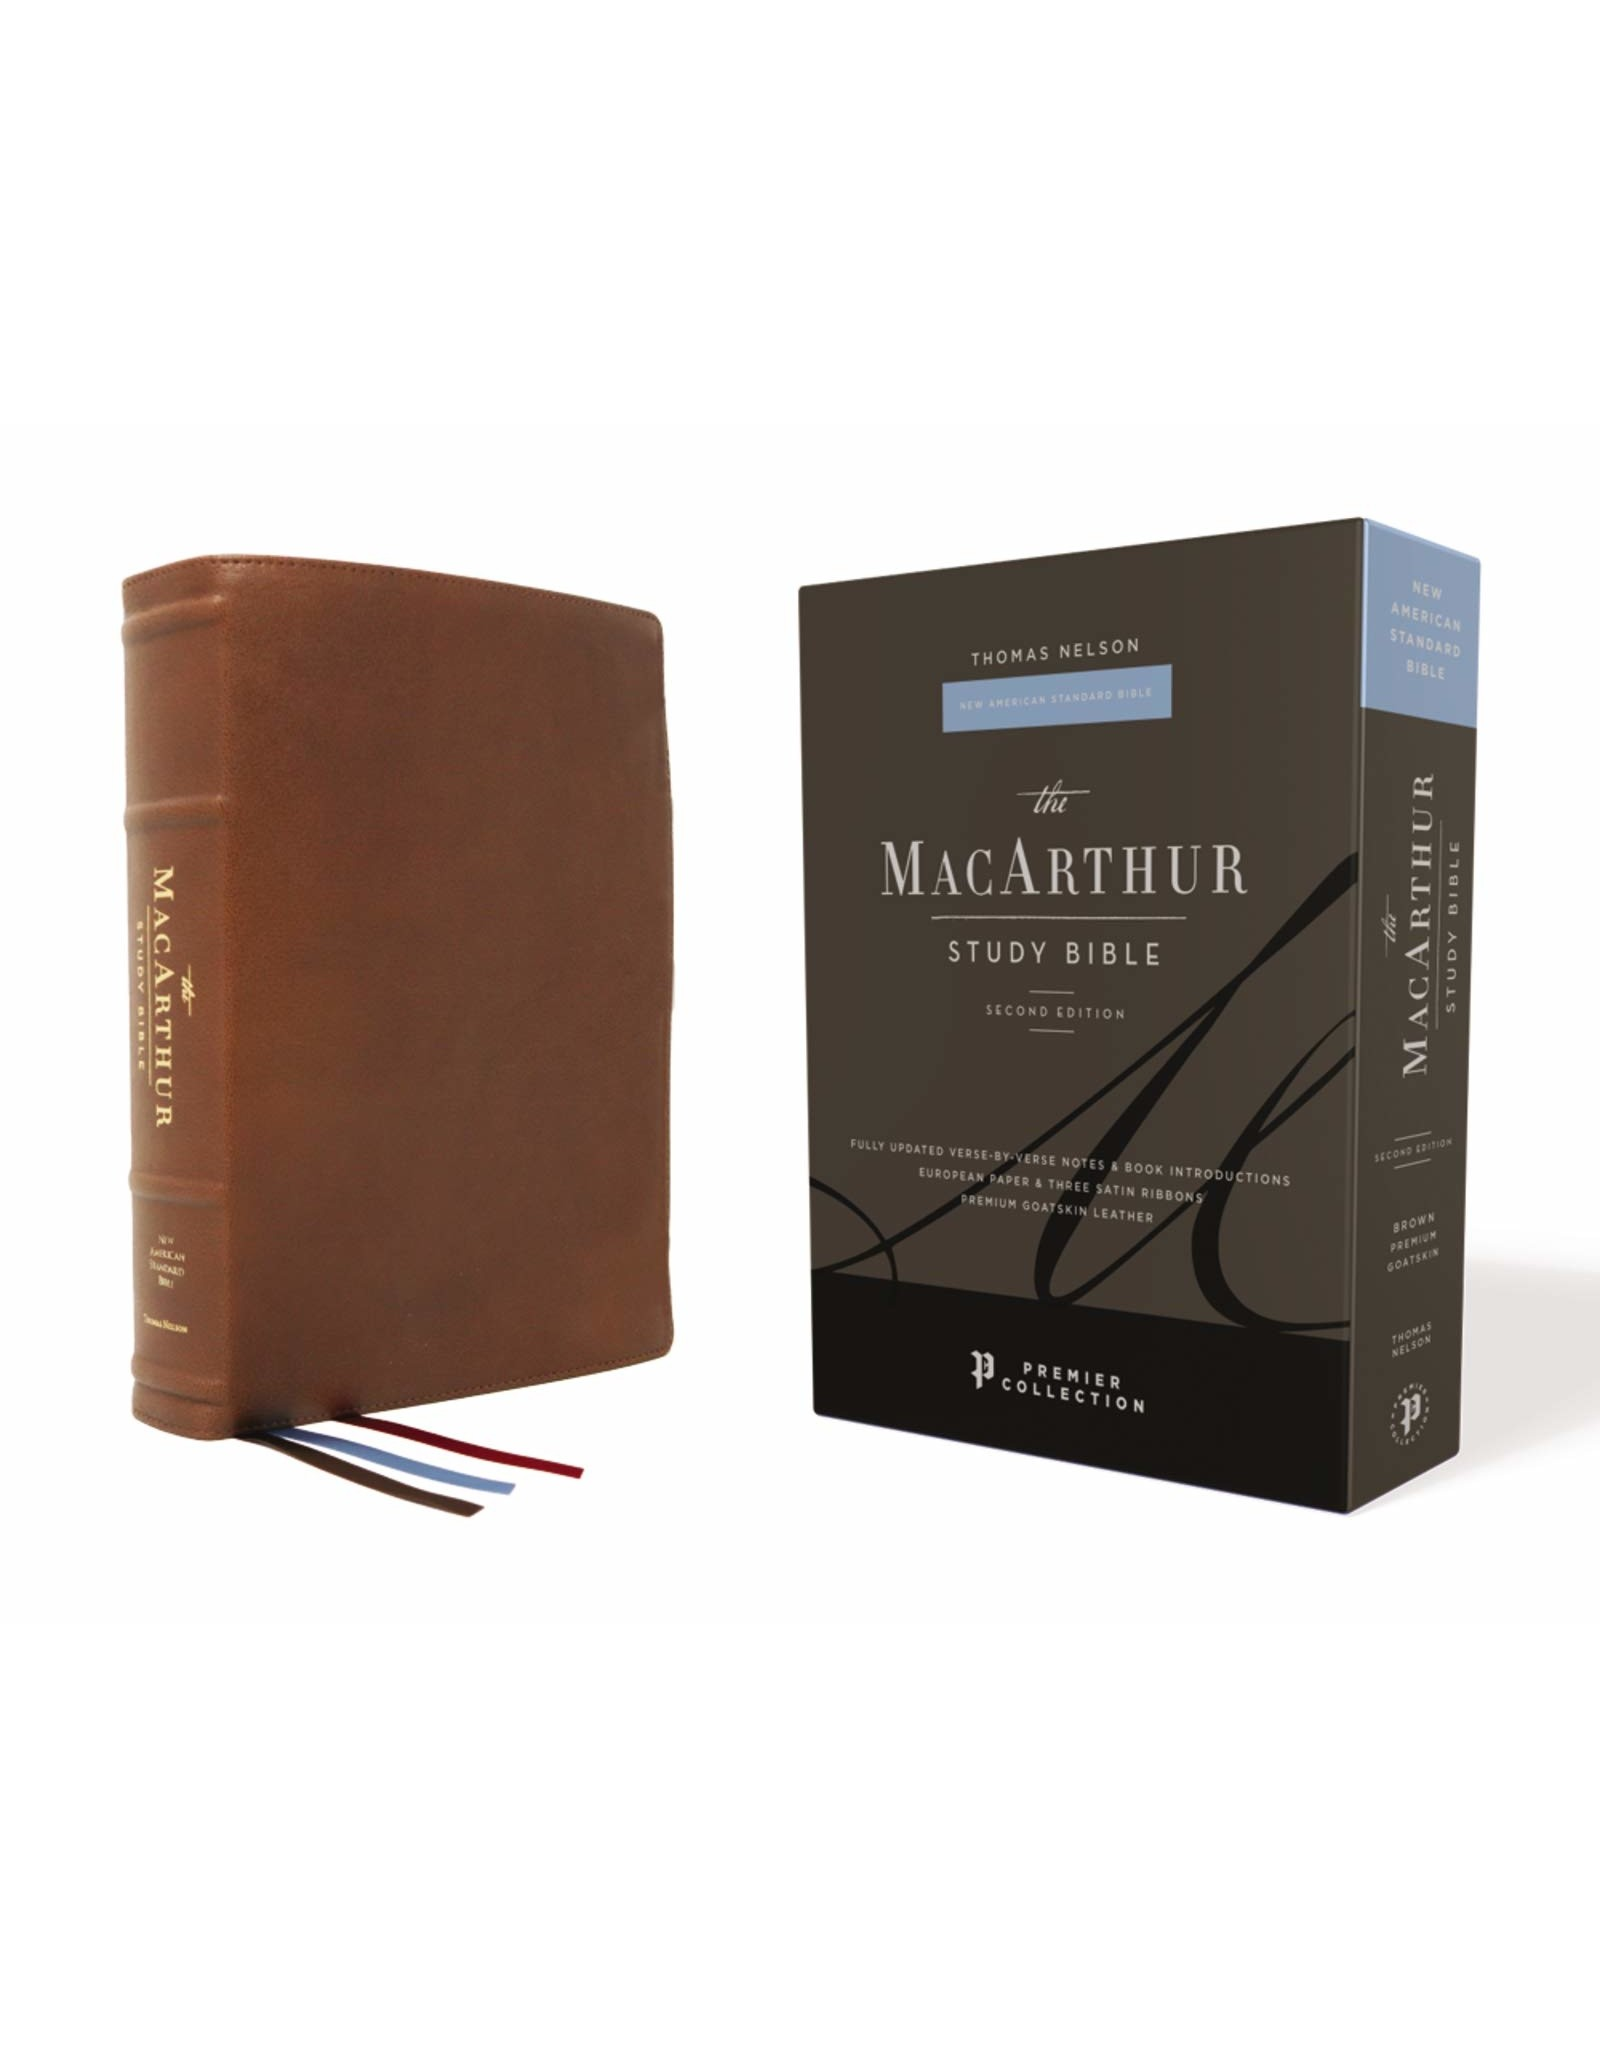 Harper Collins / Thomas Nelson / Zondervan NASB MSB MacArthur Study Bible (2nd Edition, Premium Goatskin Leather, Brown, Premier Collection)